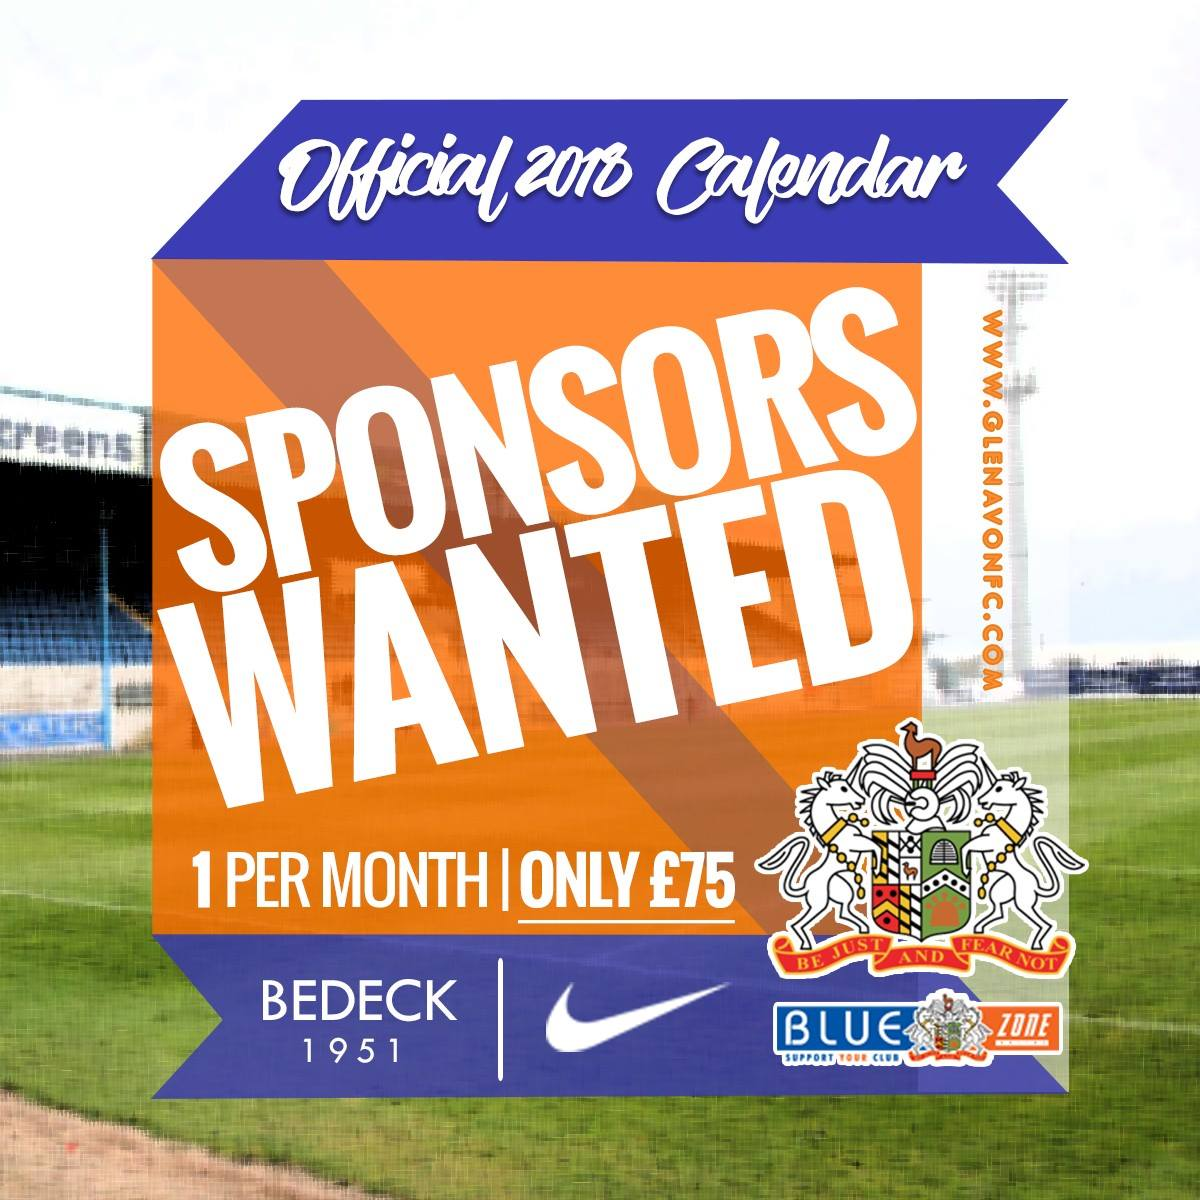 Official 2018 Calendar Sponsors Wanted